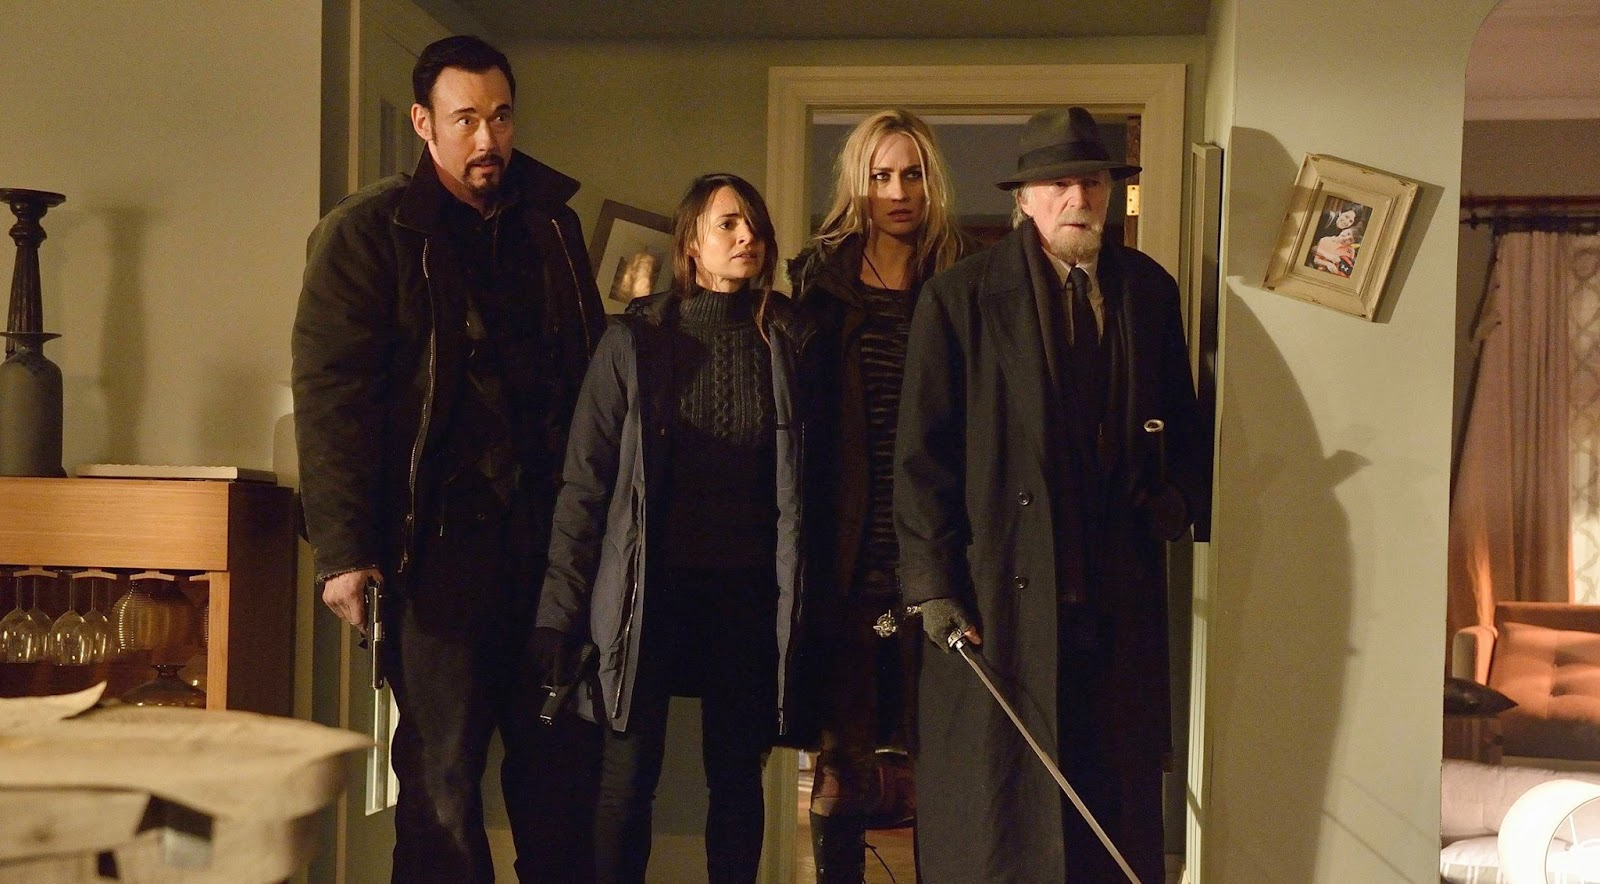 Kevin Durand, Mia Maestro, Ruta Gedmintas and David Bradley as Vasiliy Fet, Dr Nora Martinez, Dutch Velders and Abraham Setrakian in FX The Strain Episode 9 The Disappeared